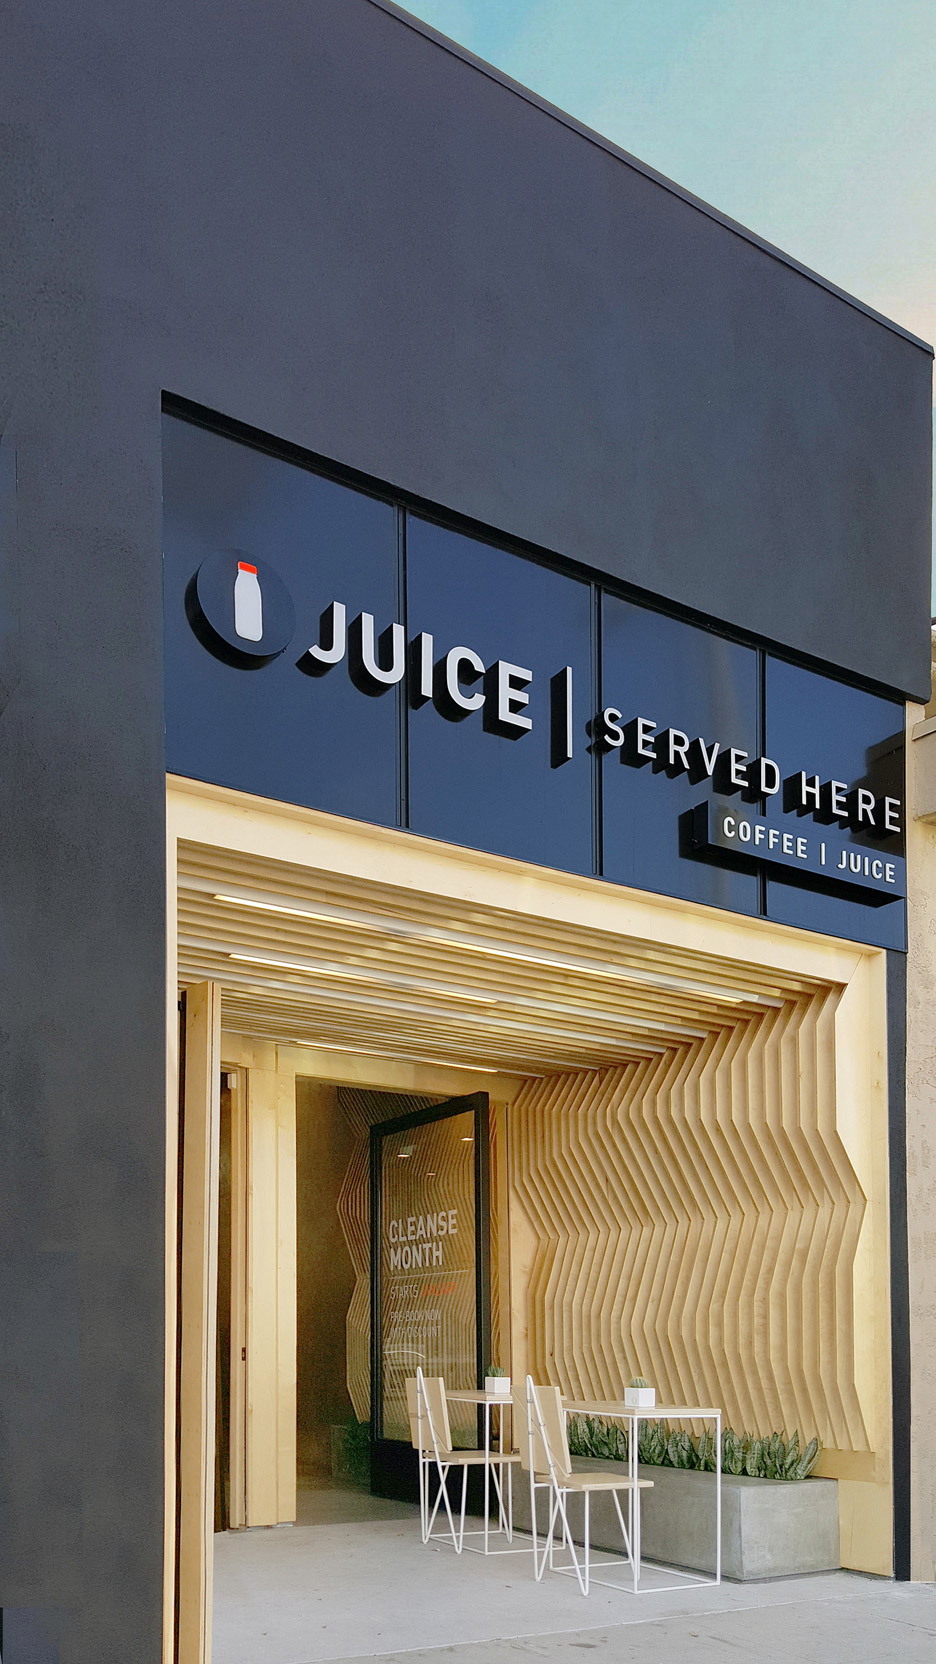 Juice Served Here by A-Industrial